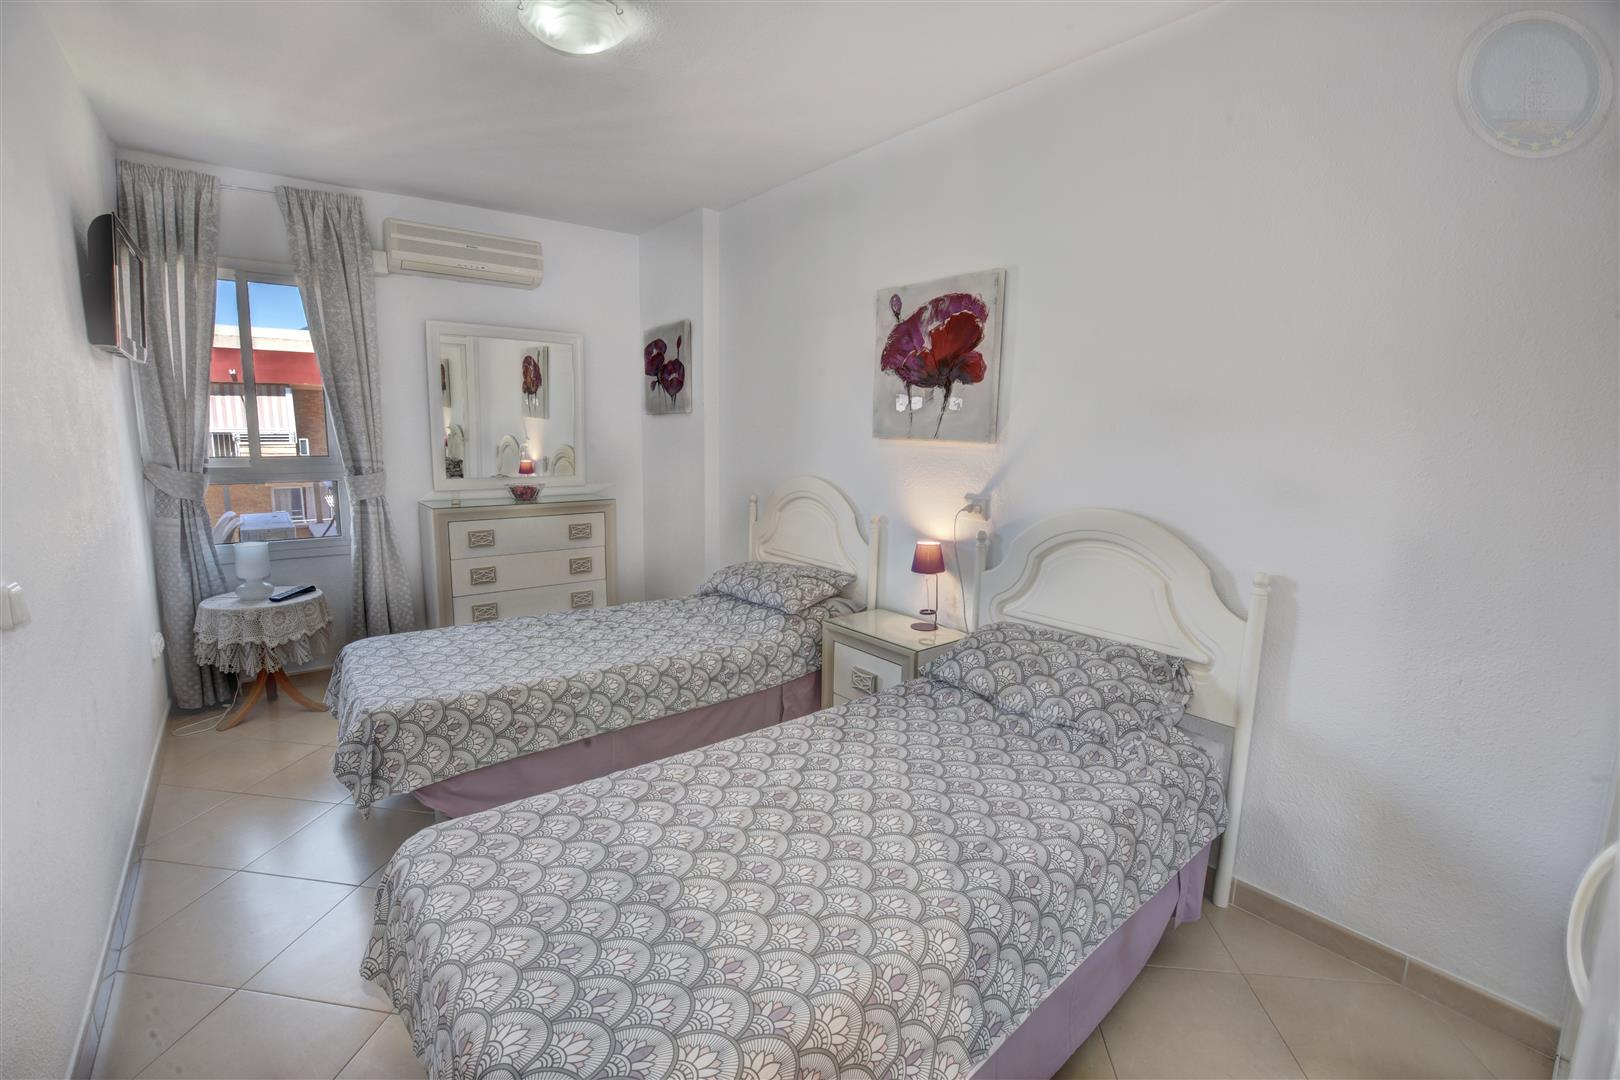 Apartment for Sale in Minerva - Bedroom